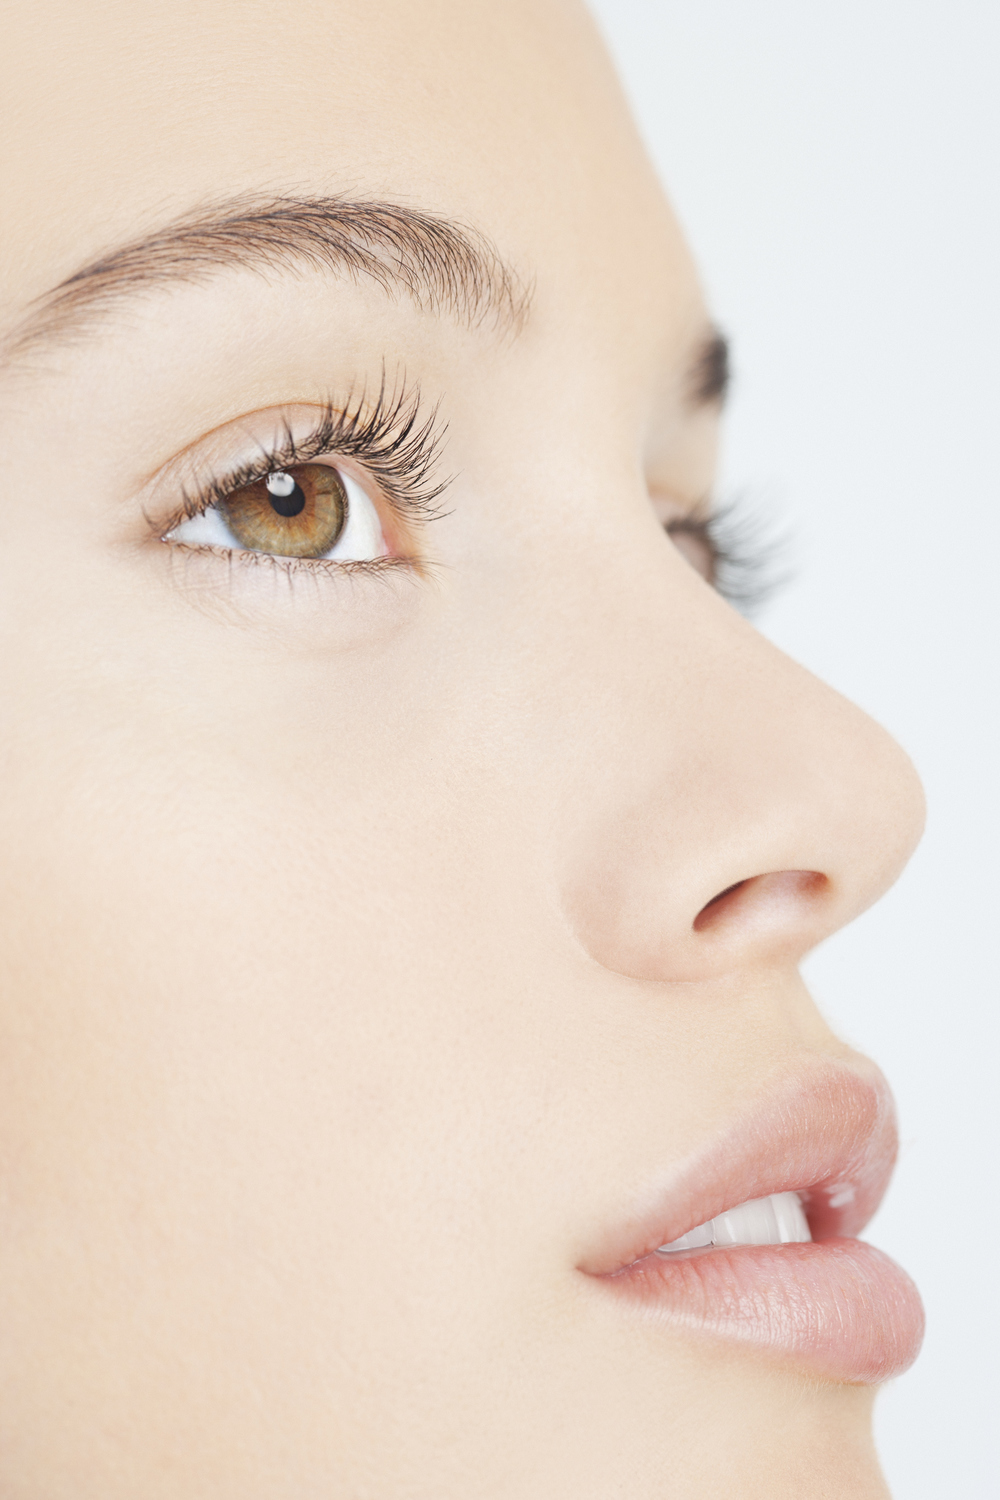 An elegant nose can help enhance your facial profile